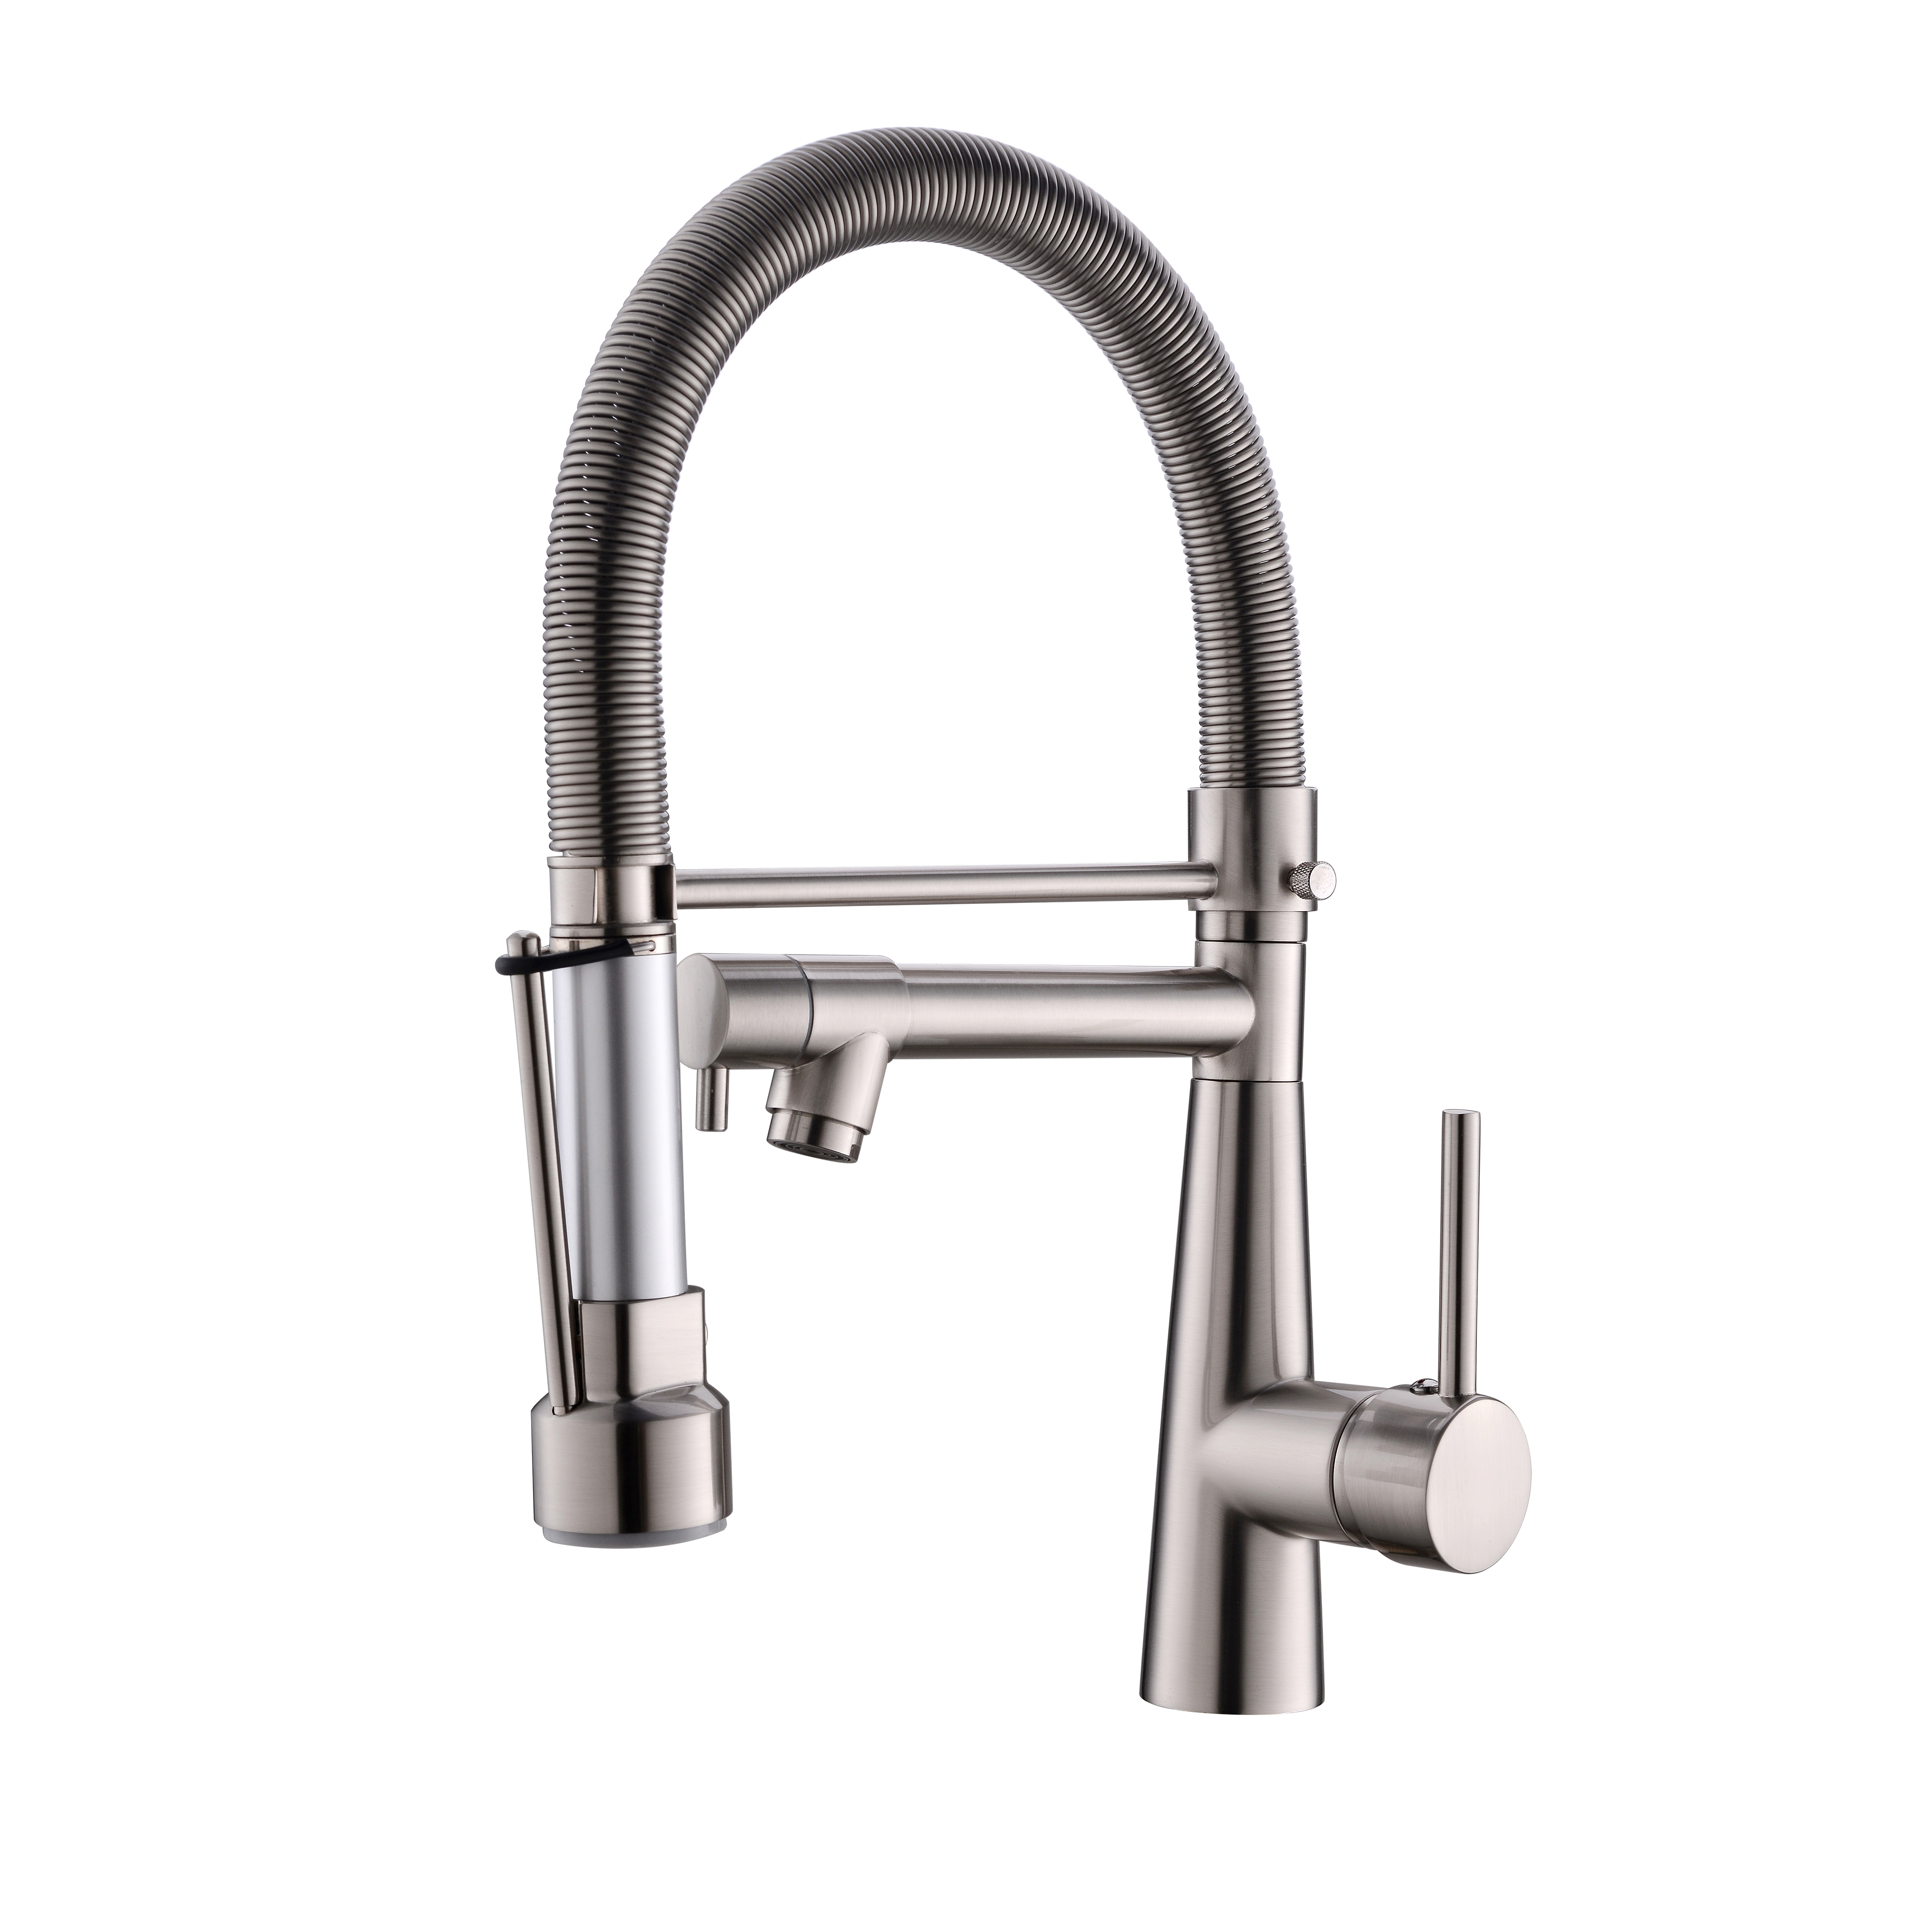 Pull Down Kitchen Faucet With Lock Sprayer,Single Handle Spring Stainless Steel Kitchen Sink Faucet Brushed Nickel